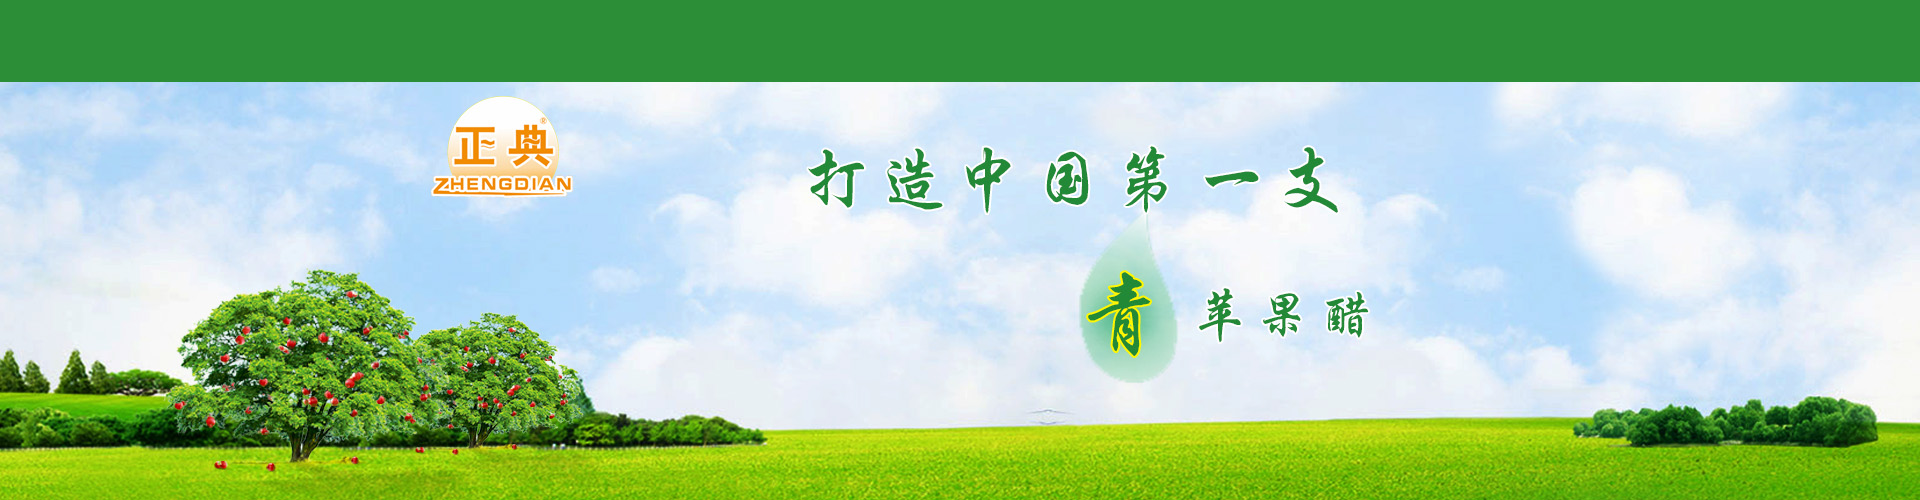 内页banner